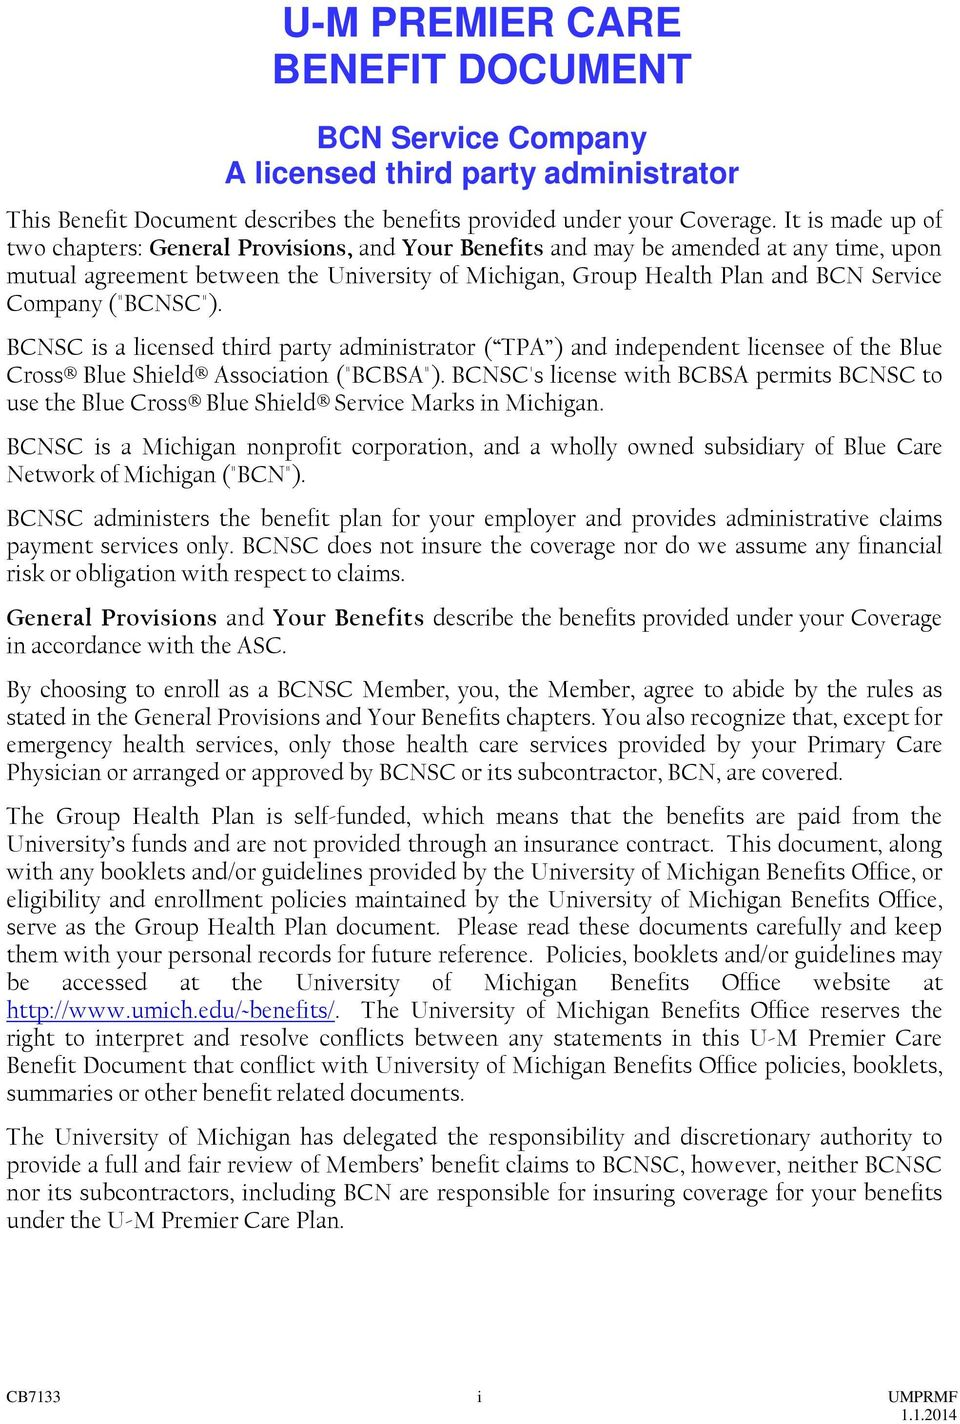 BCN Service Company U-M PREMIER CARE  Benefit Document - PDF